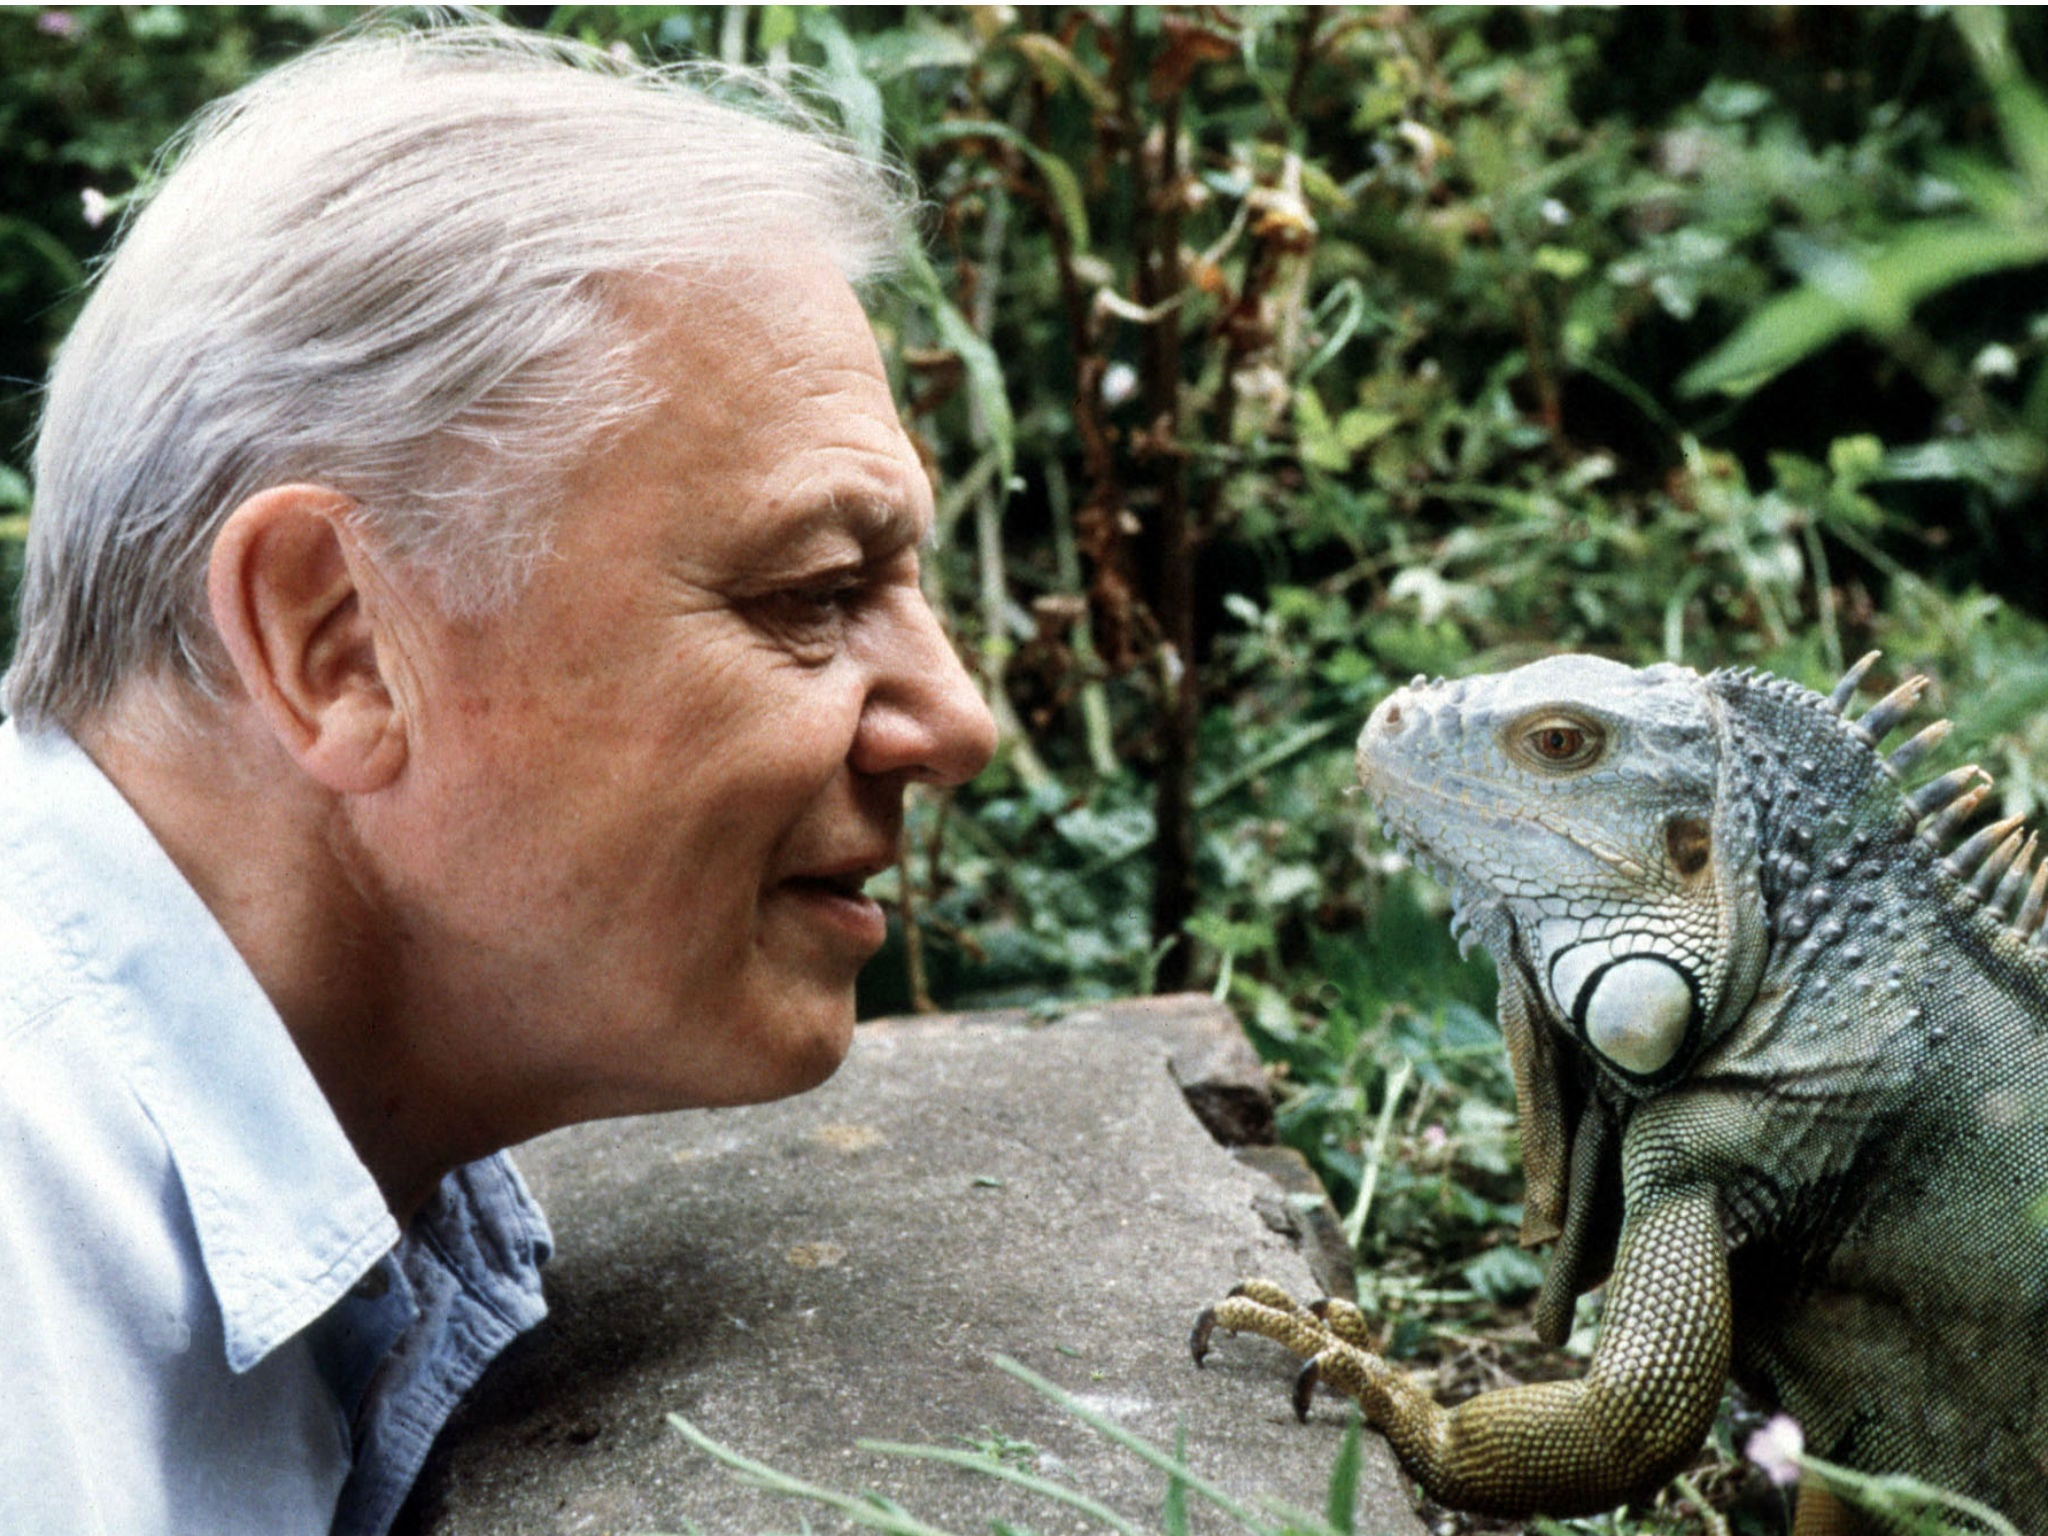 Sir David Attenborough at 90 interview: 'Retire? I'll never tire of the natural world' | The Independent